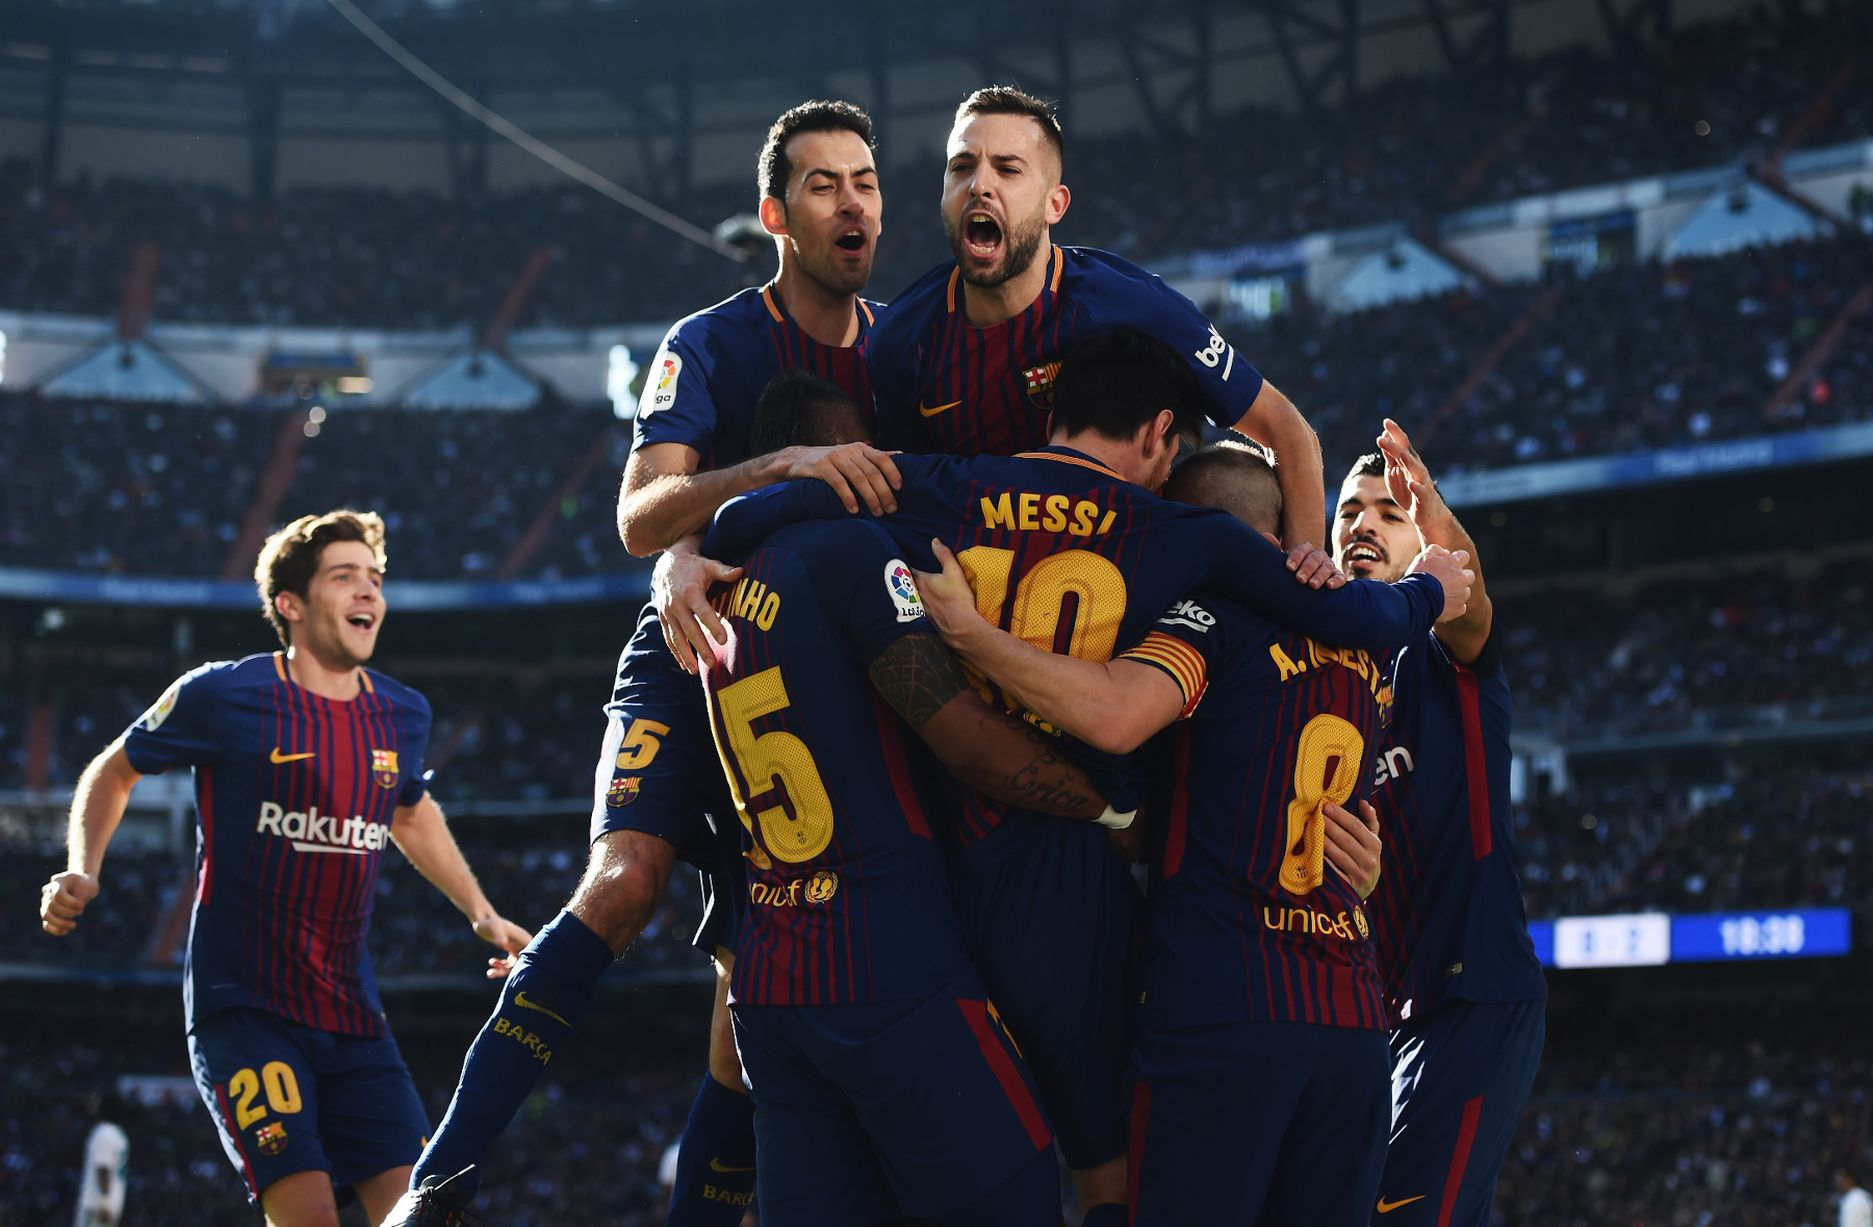 #ElClasico : Barca beat Madrid 3-0, race 14 points clear